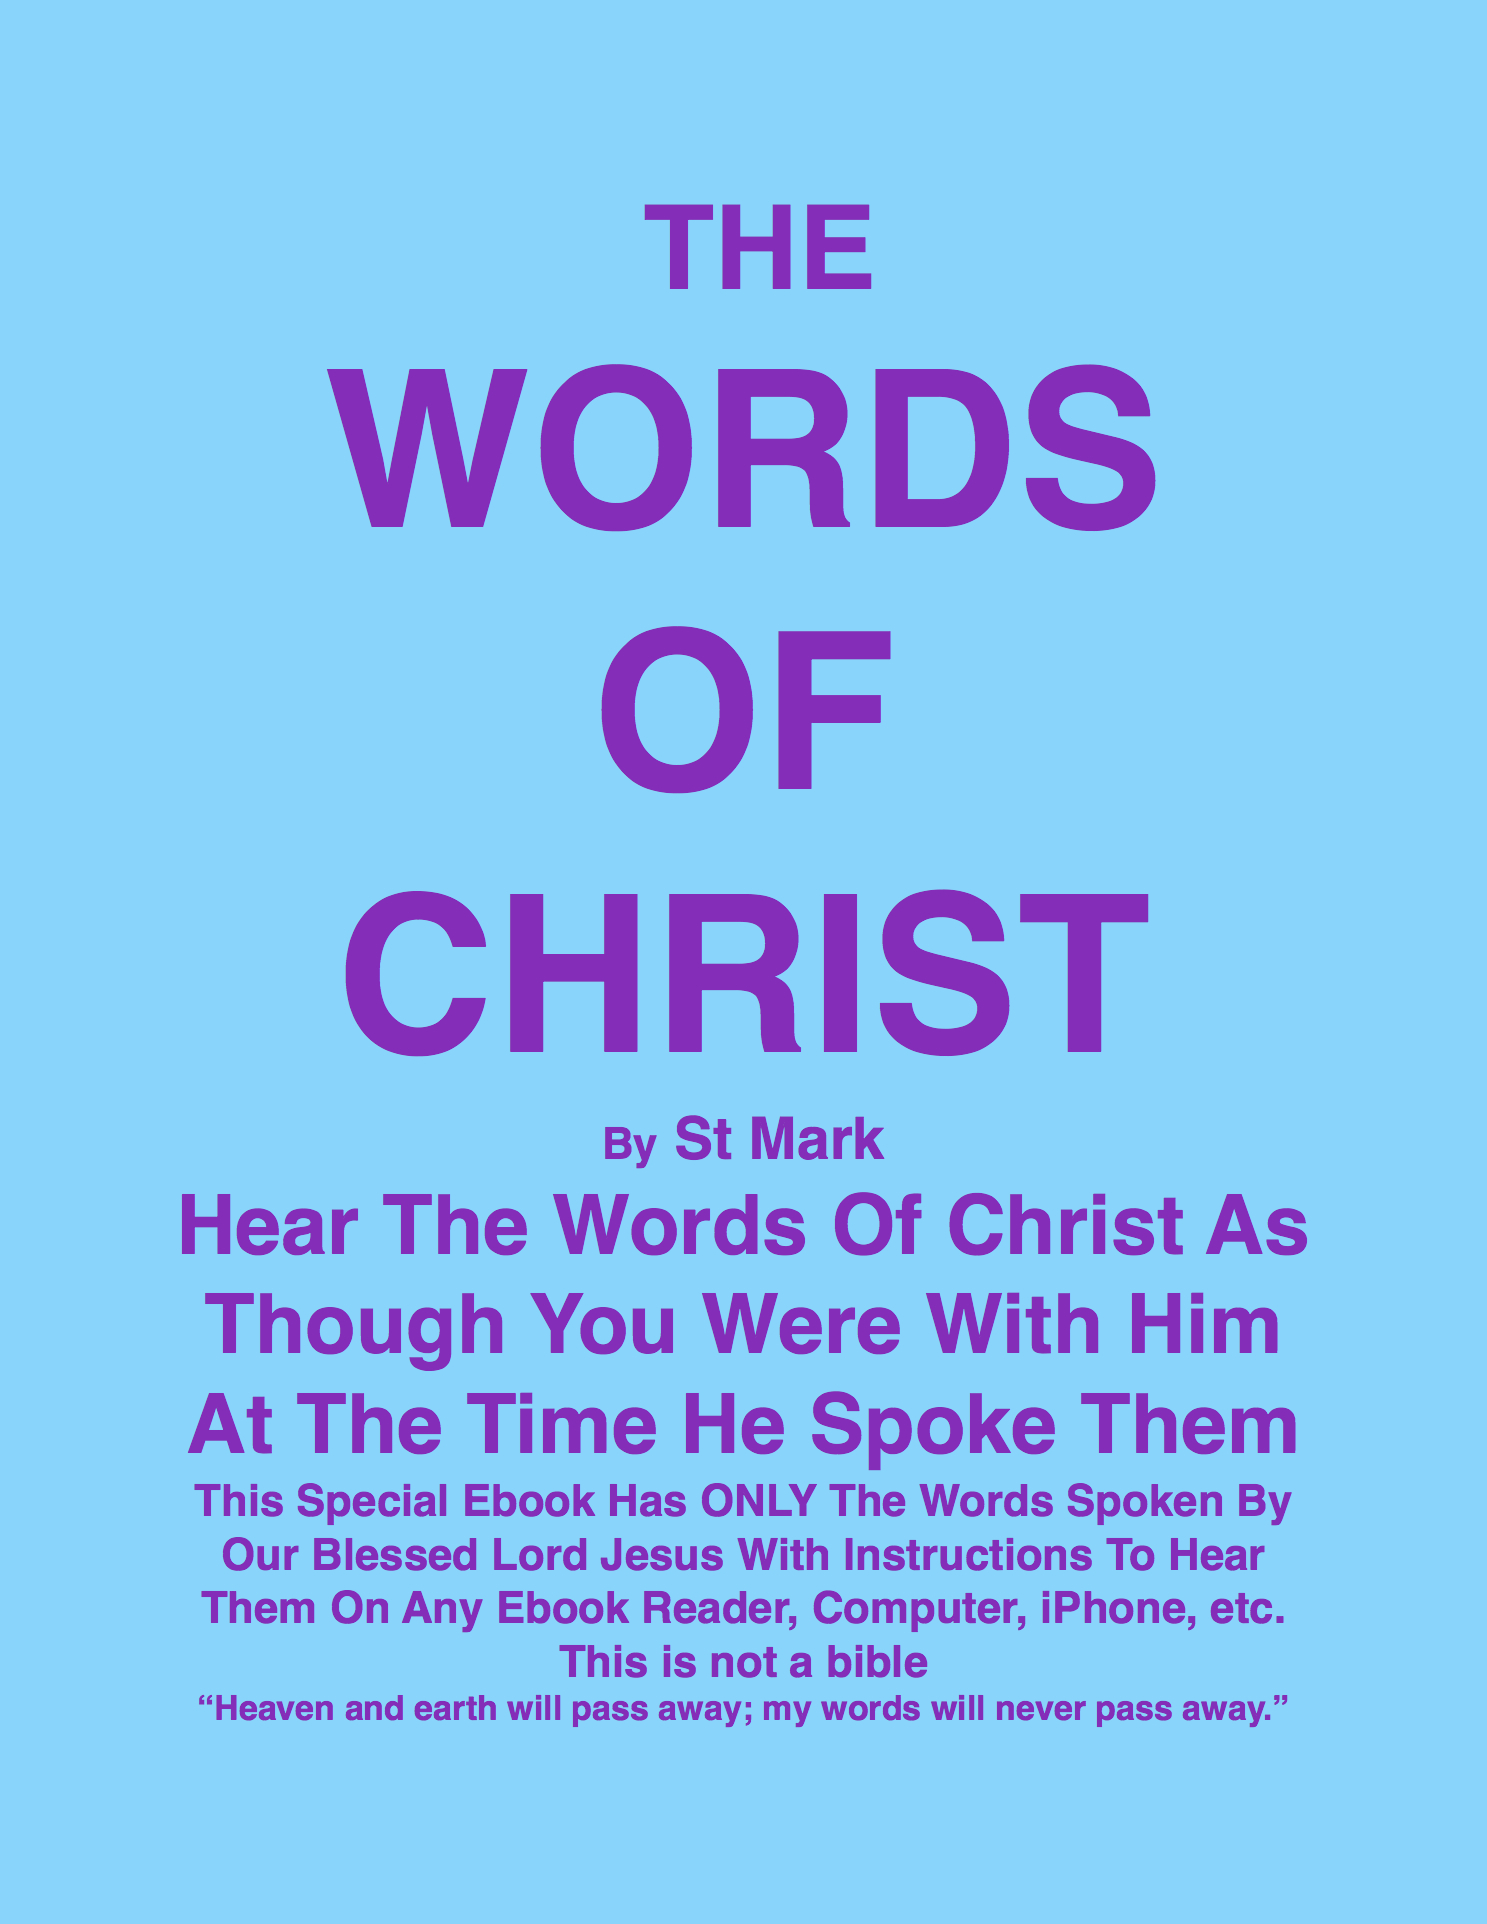 THE WORDS OF CHRIST By St Mark